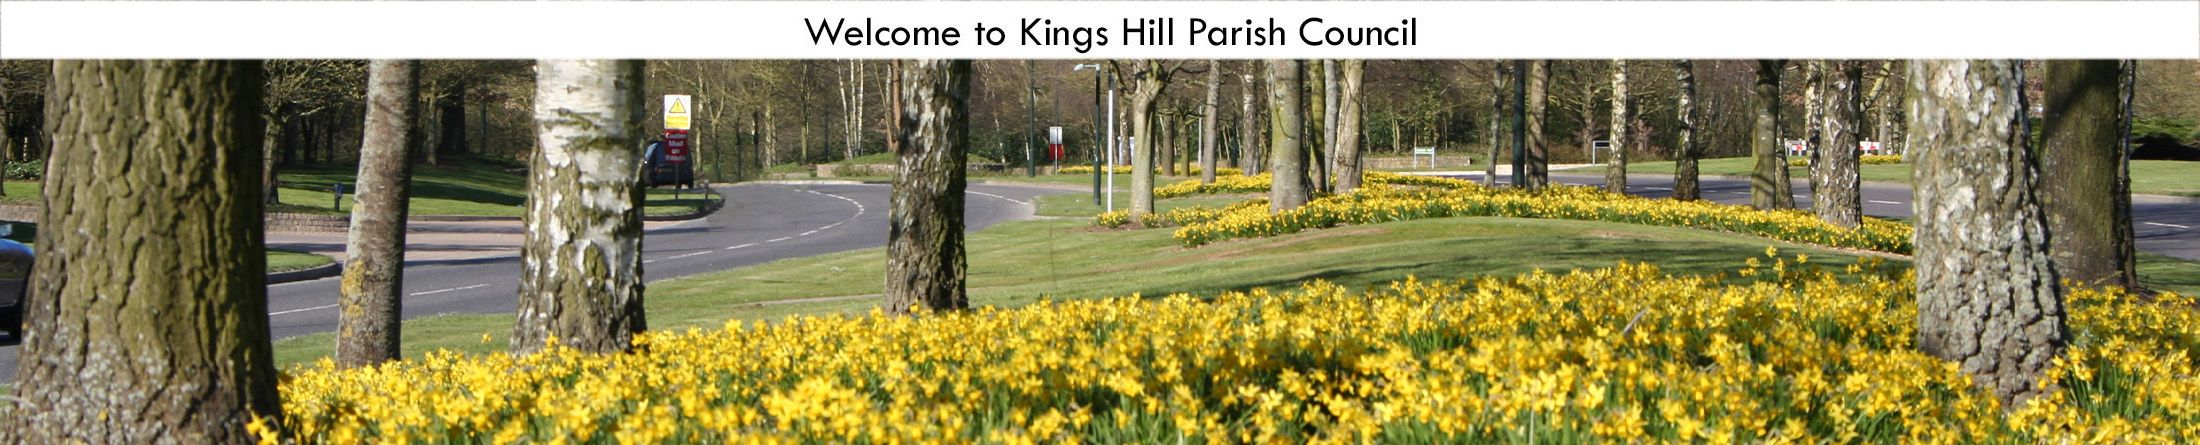 Header Image for Kings Hill Parish Council